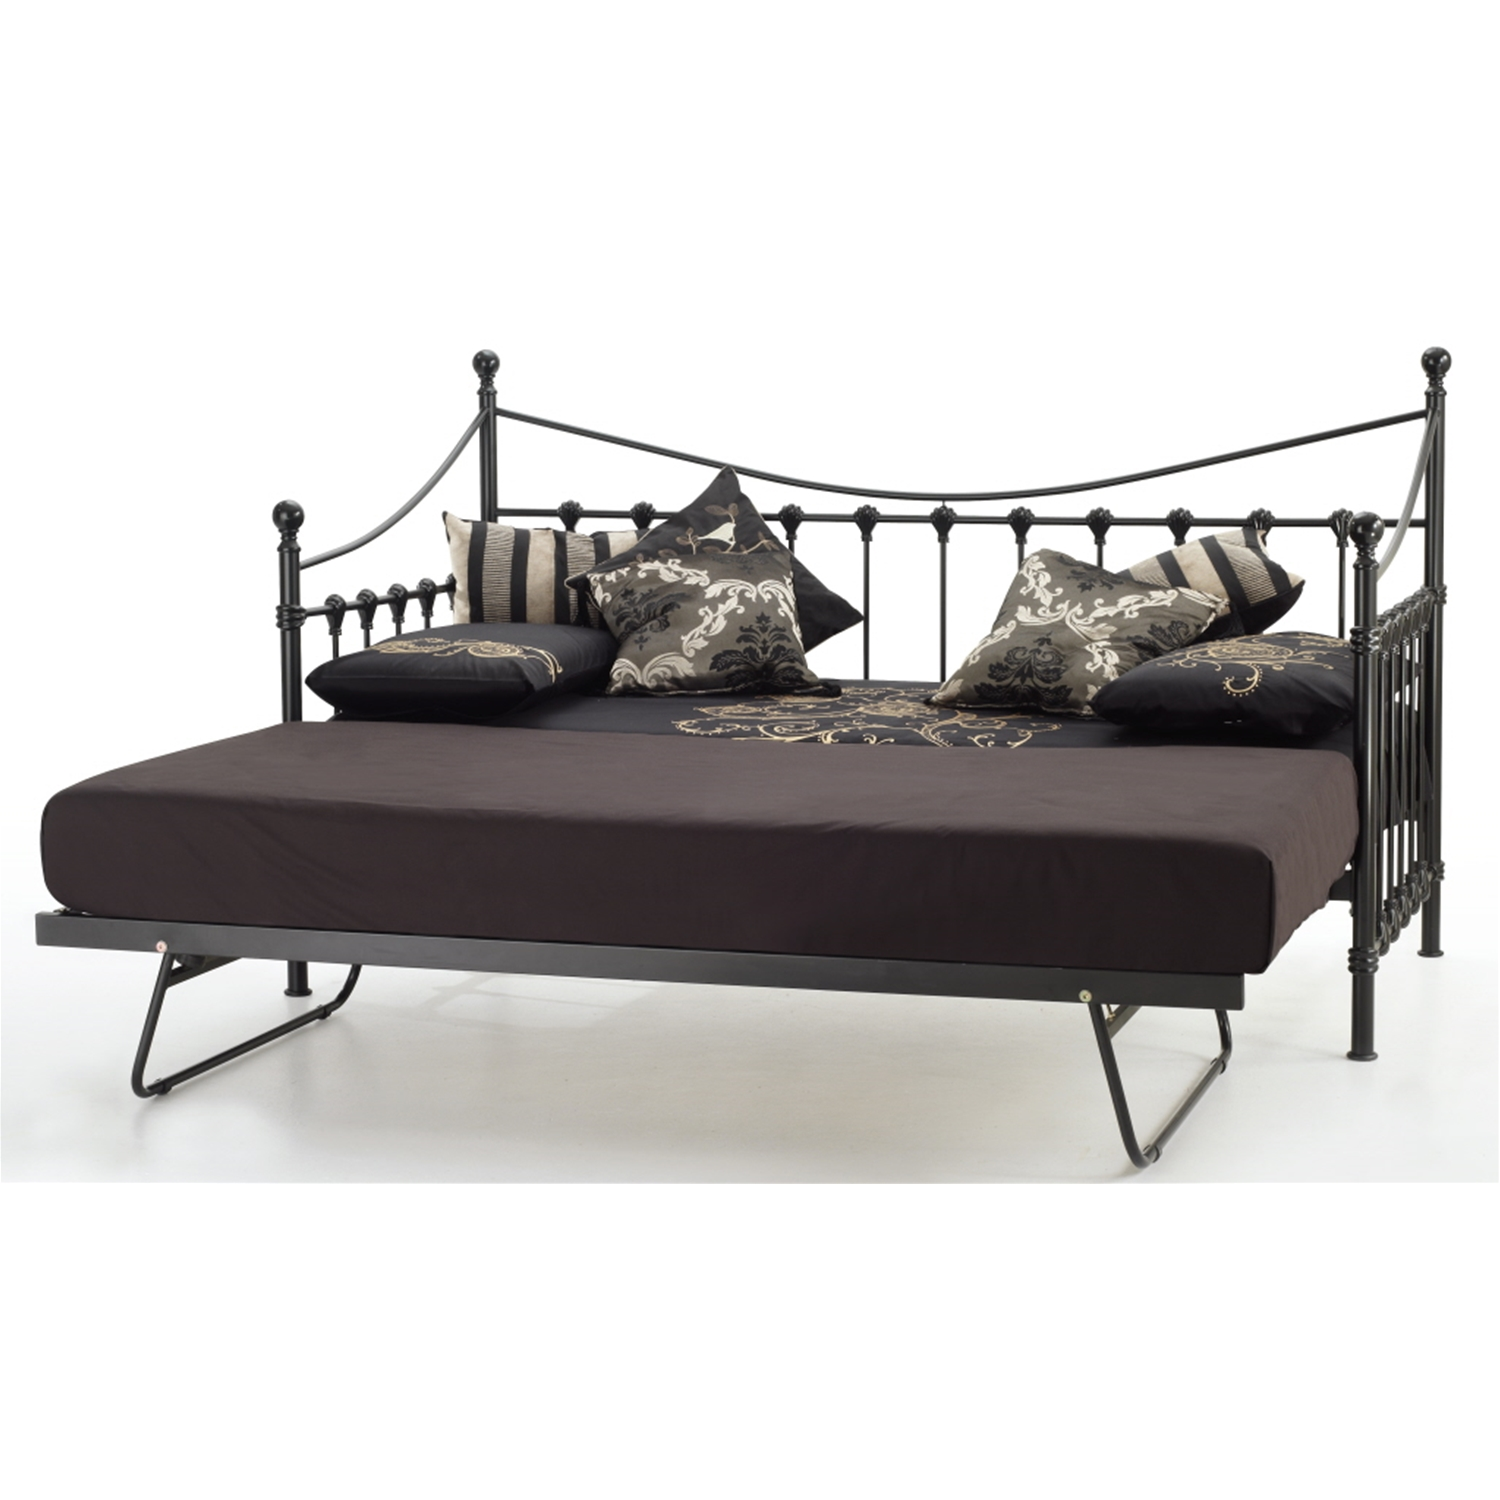 Image of Casa Marseille Single Day Bed with Guest Bed